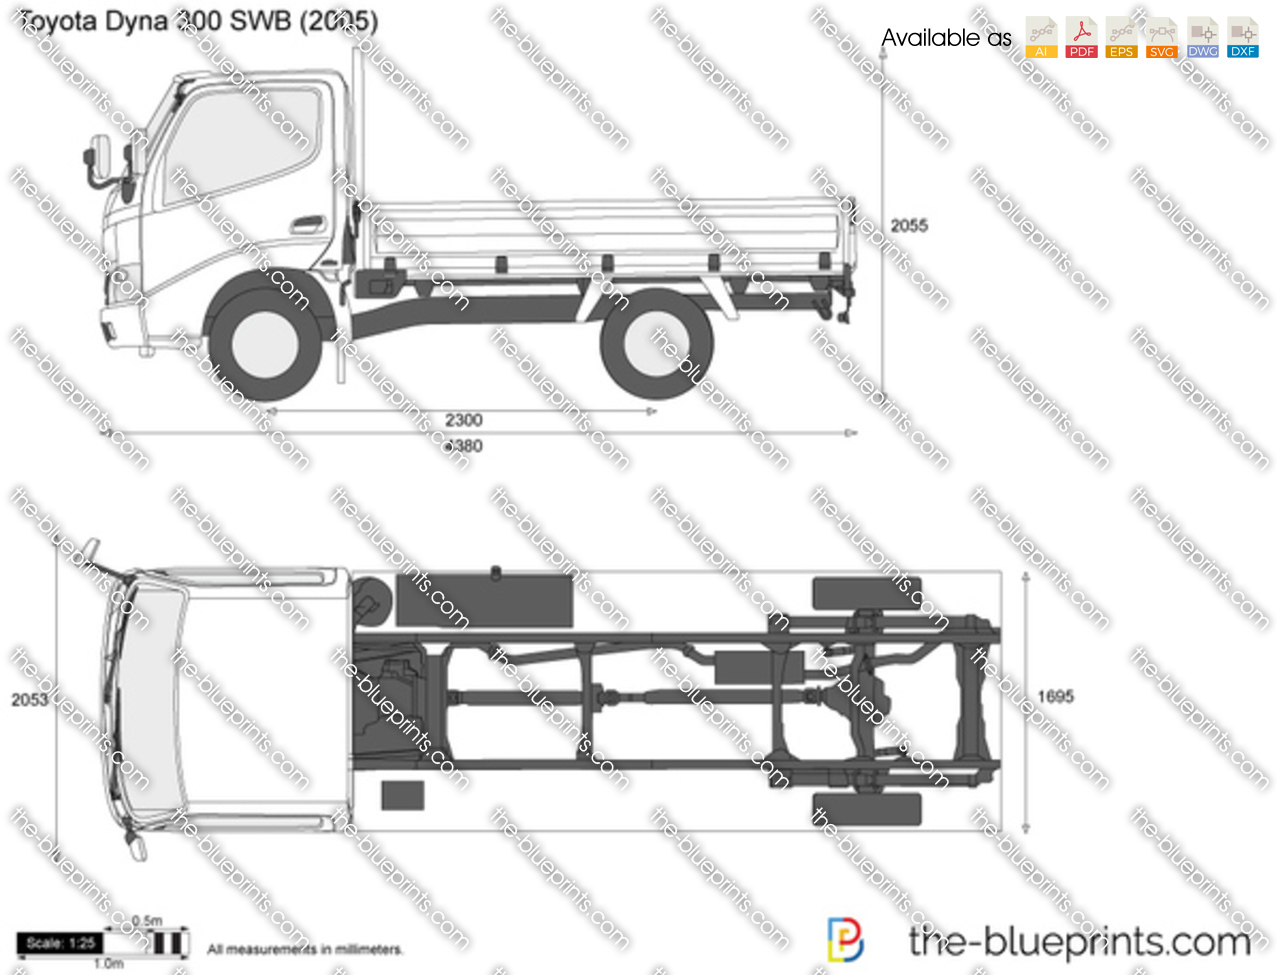 The Blueprints Com Vector Drawing Toyota Dyna 300 Swb